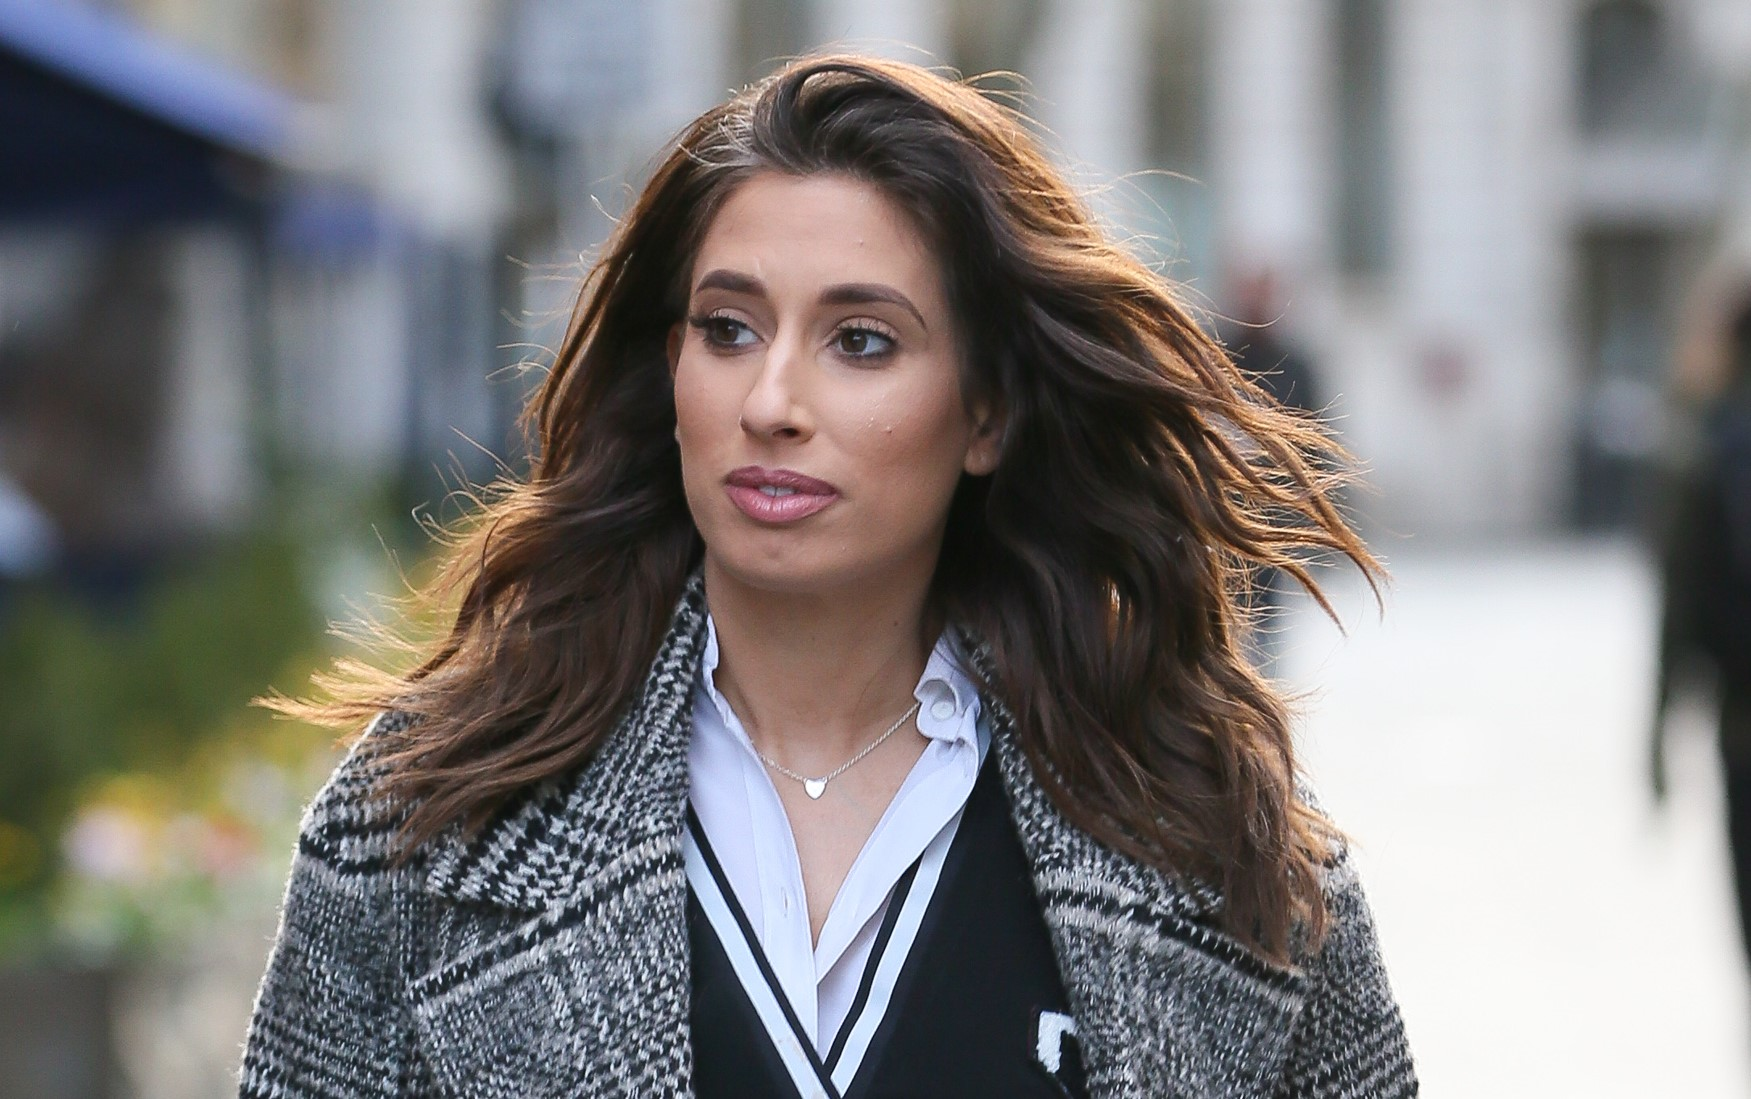 Pregnant Stacey Solomon reveals her discomfort at having 'sweaty boobs'